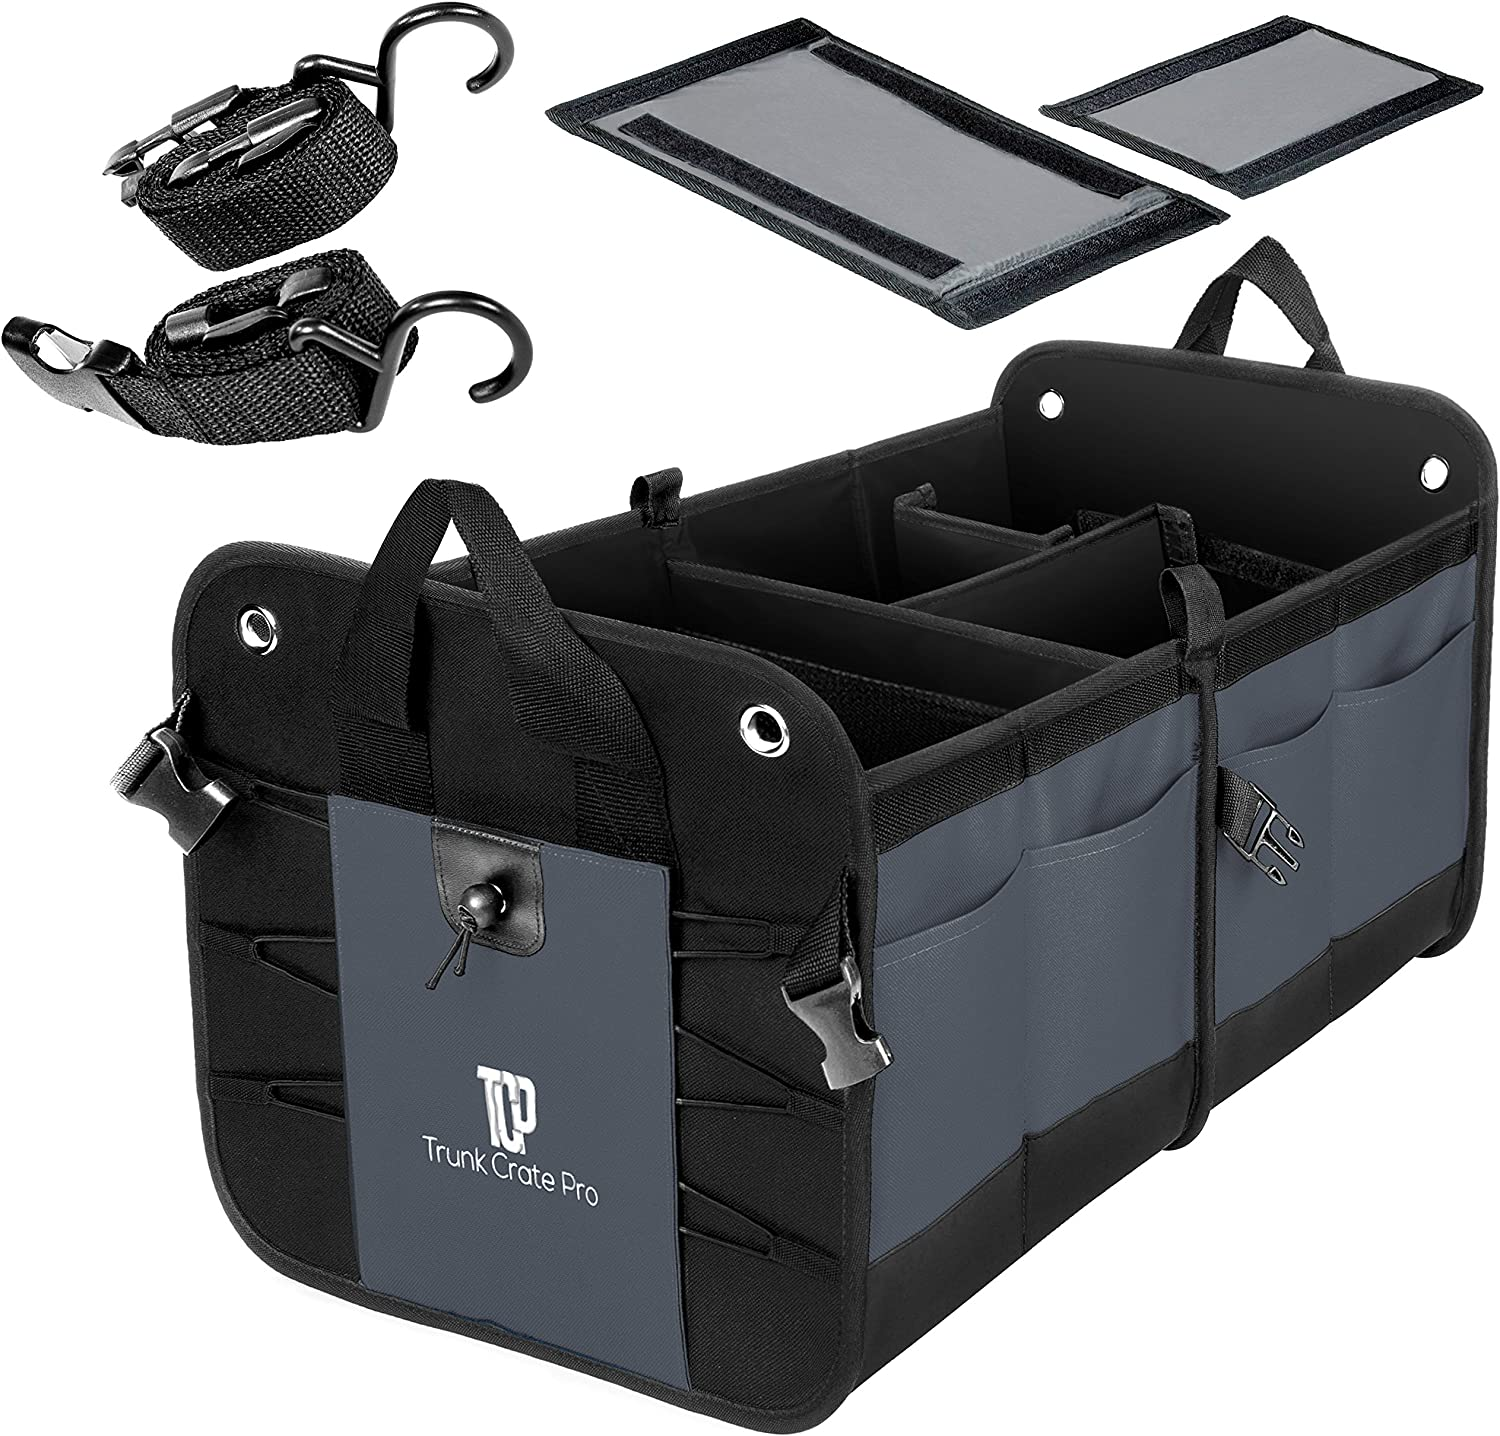 WYEWYE Car Trunk Organizer Auto Trunk Cargo Organizer with Cooler Compartment,Car Storage Box for SUV Truck Black Multi Compartments Collapsible Cargo Storage